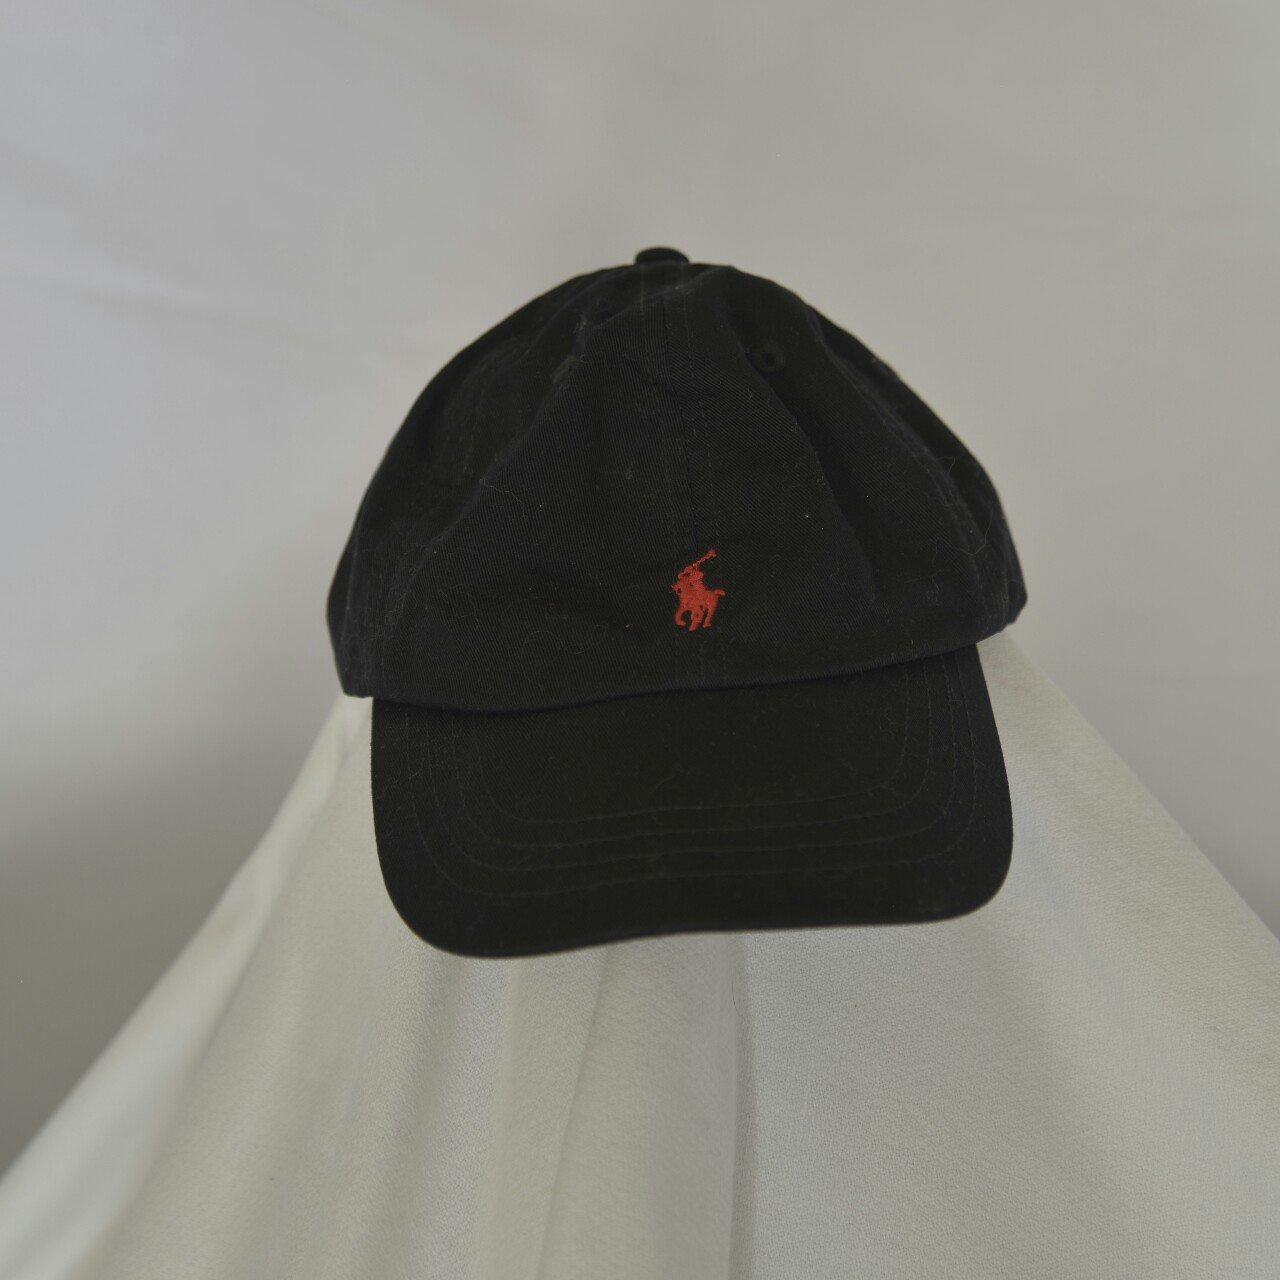 Polo by Ralph Lauren dad hat. Black with red embroidery. - Depop 785162b88ad